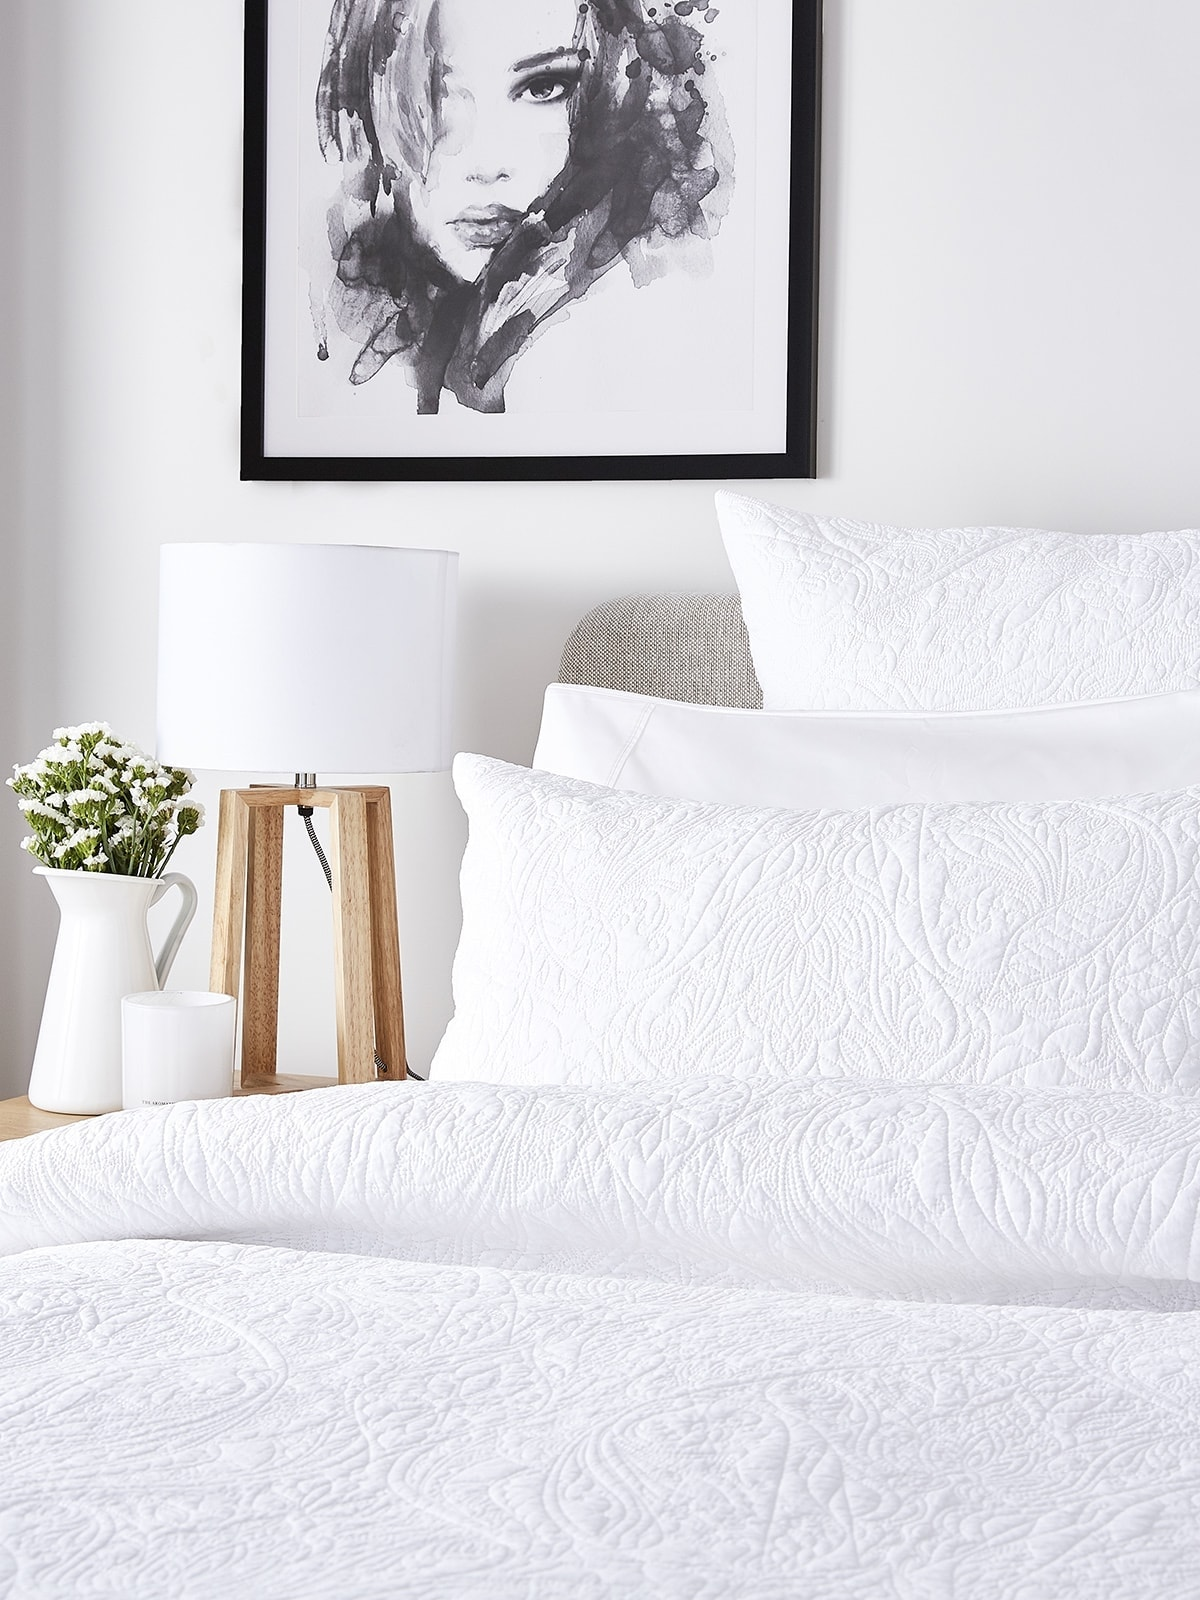 9 Key things your Master Bedroom Design is Missing